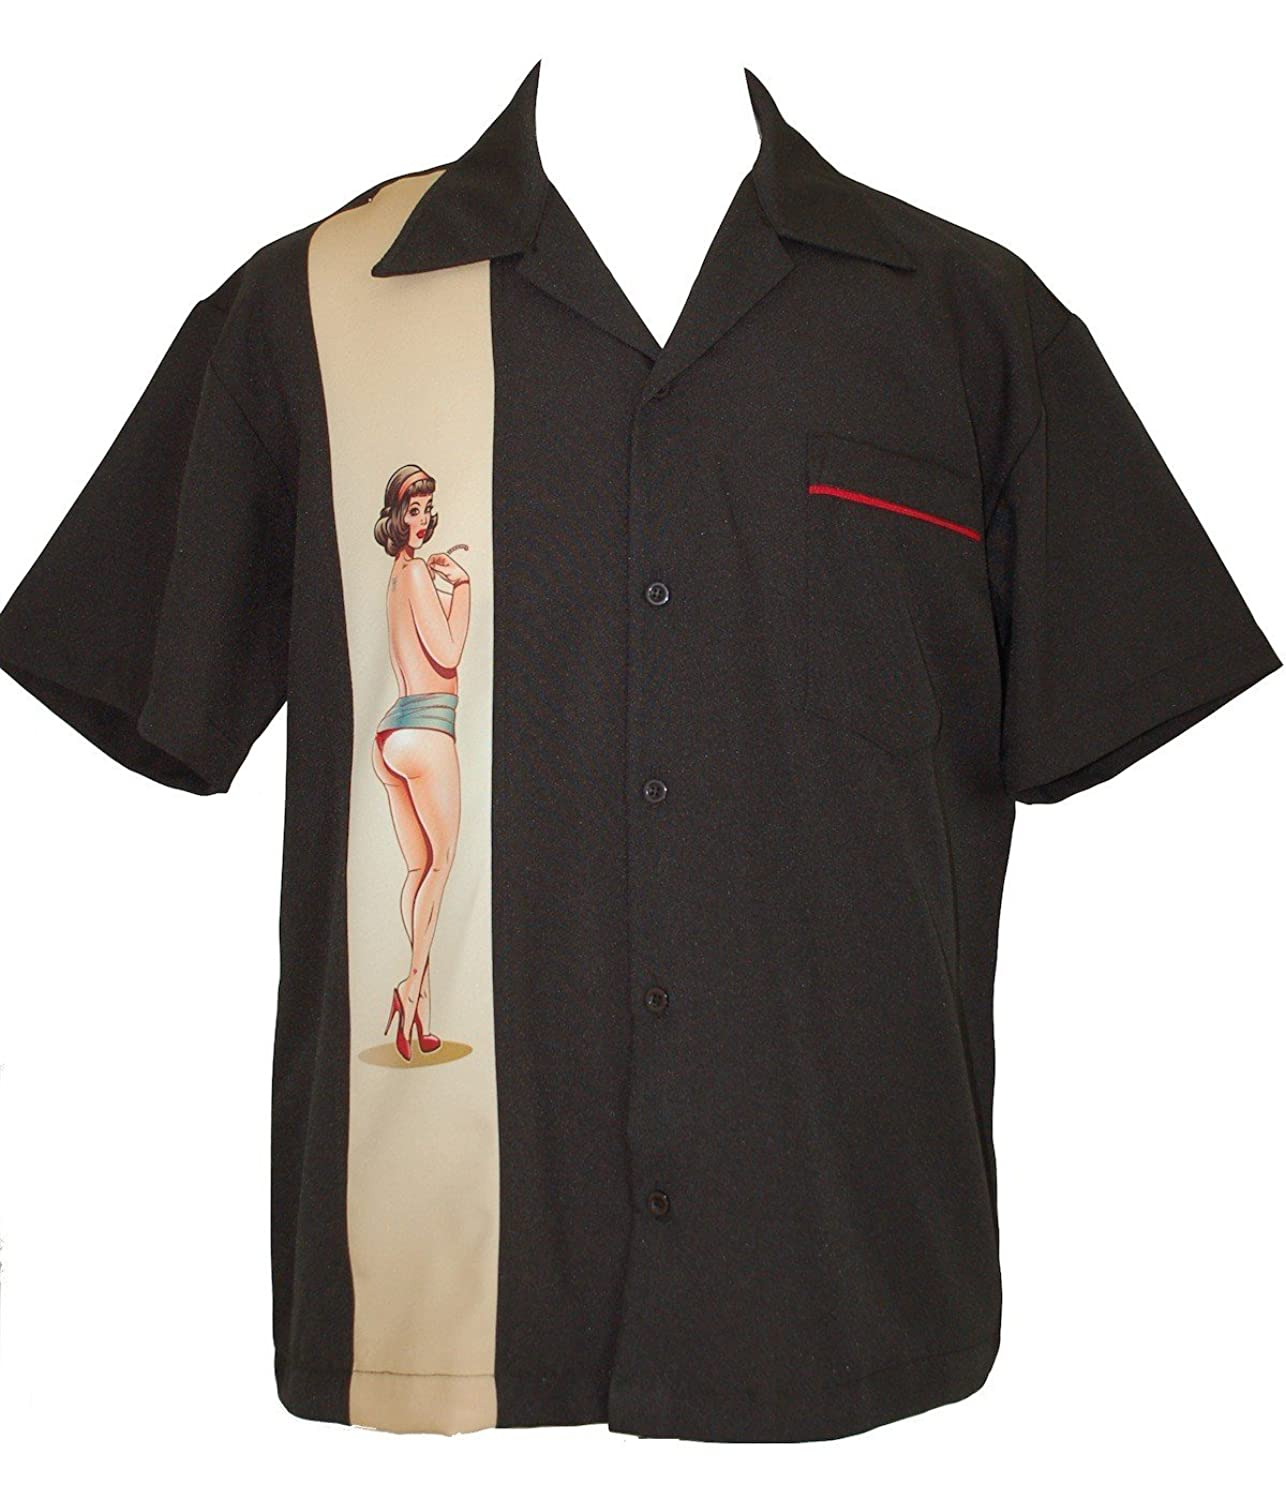 Mens Vintage Shirts – Casual, Dress, T-shirts, Polos PinUp Girl Mens Bowling Lounge Retro Shirt ~ BeRetro Classy PinUp Girl $65.95 AT vintagedancer.com